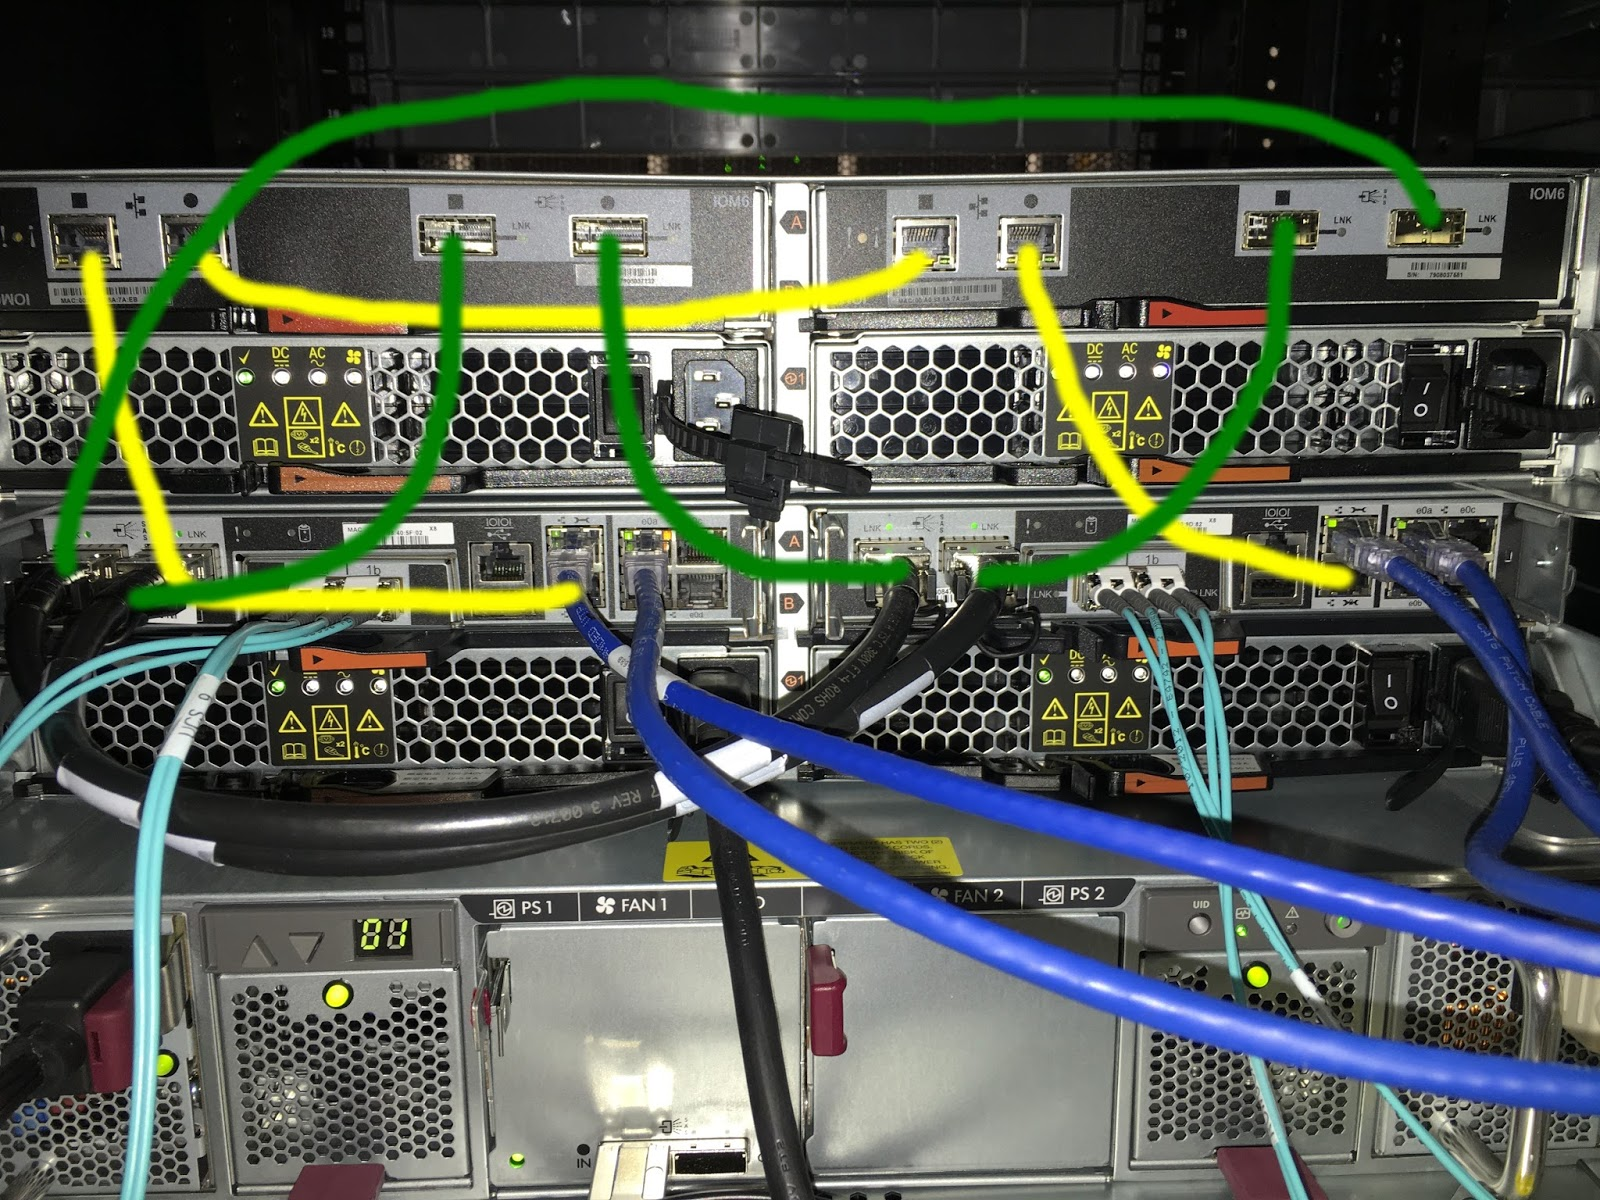 medium resolution of below is the production system the racked external storage above it and the ultimate path for the sas and acp cables worked like a champ